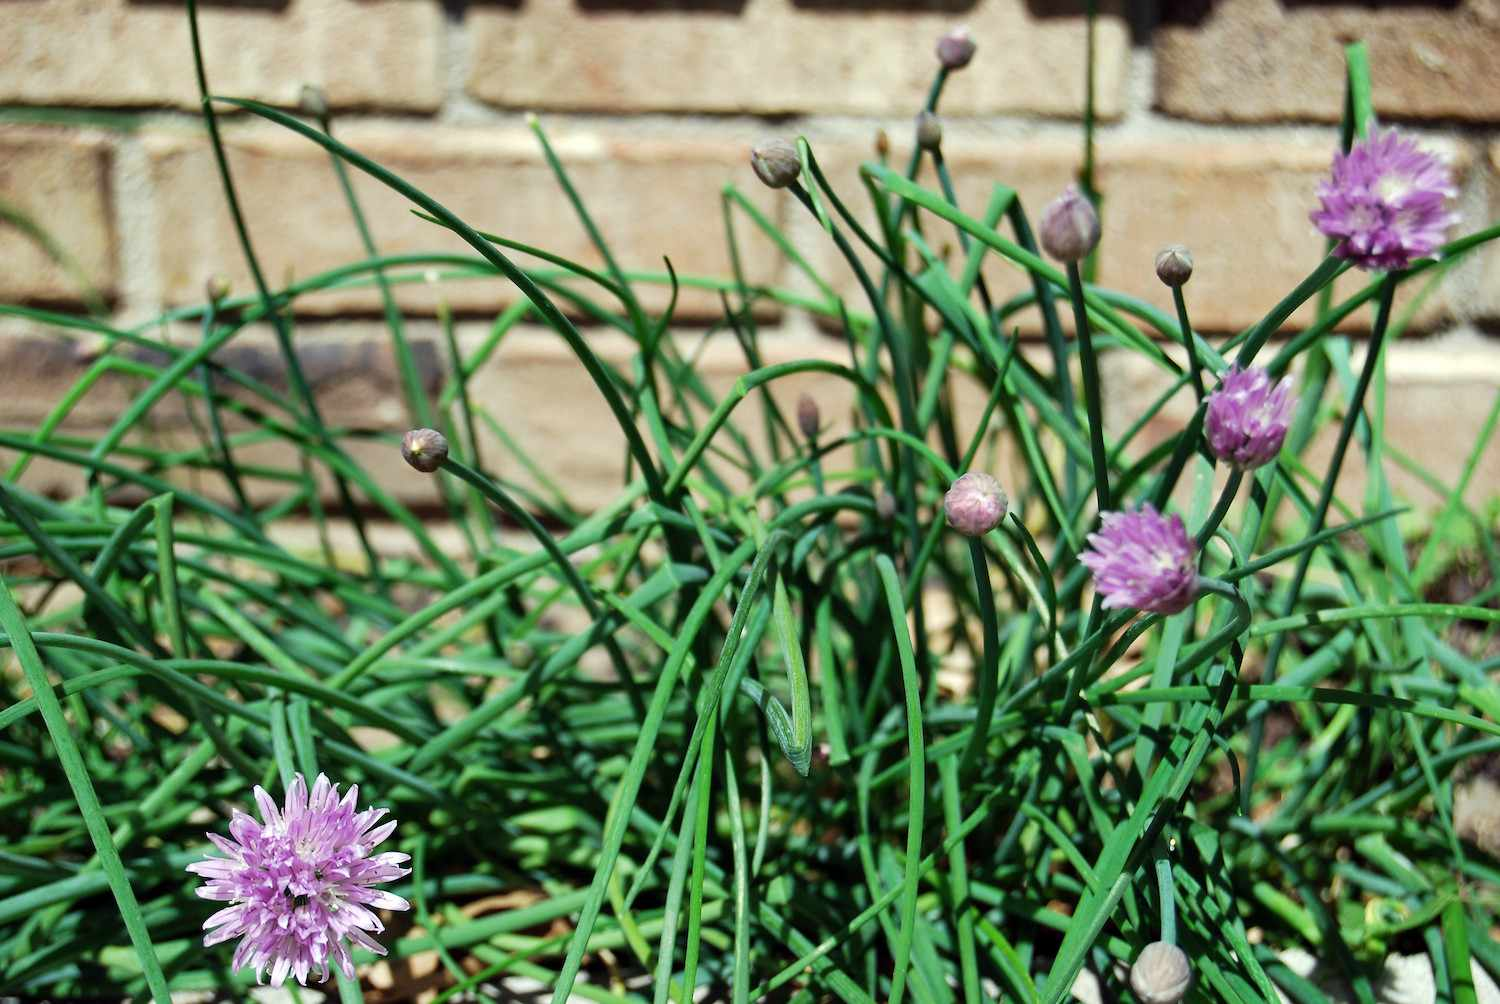 Chives grow in front of a brick wall